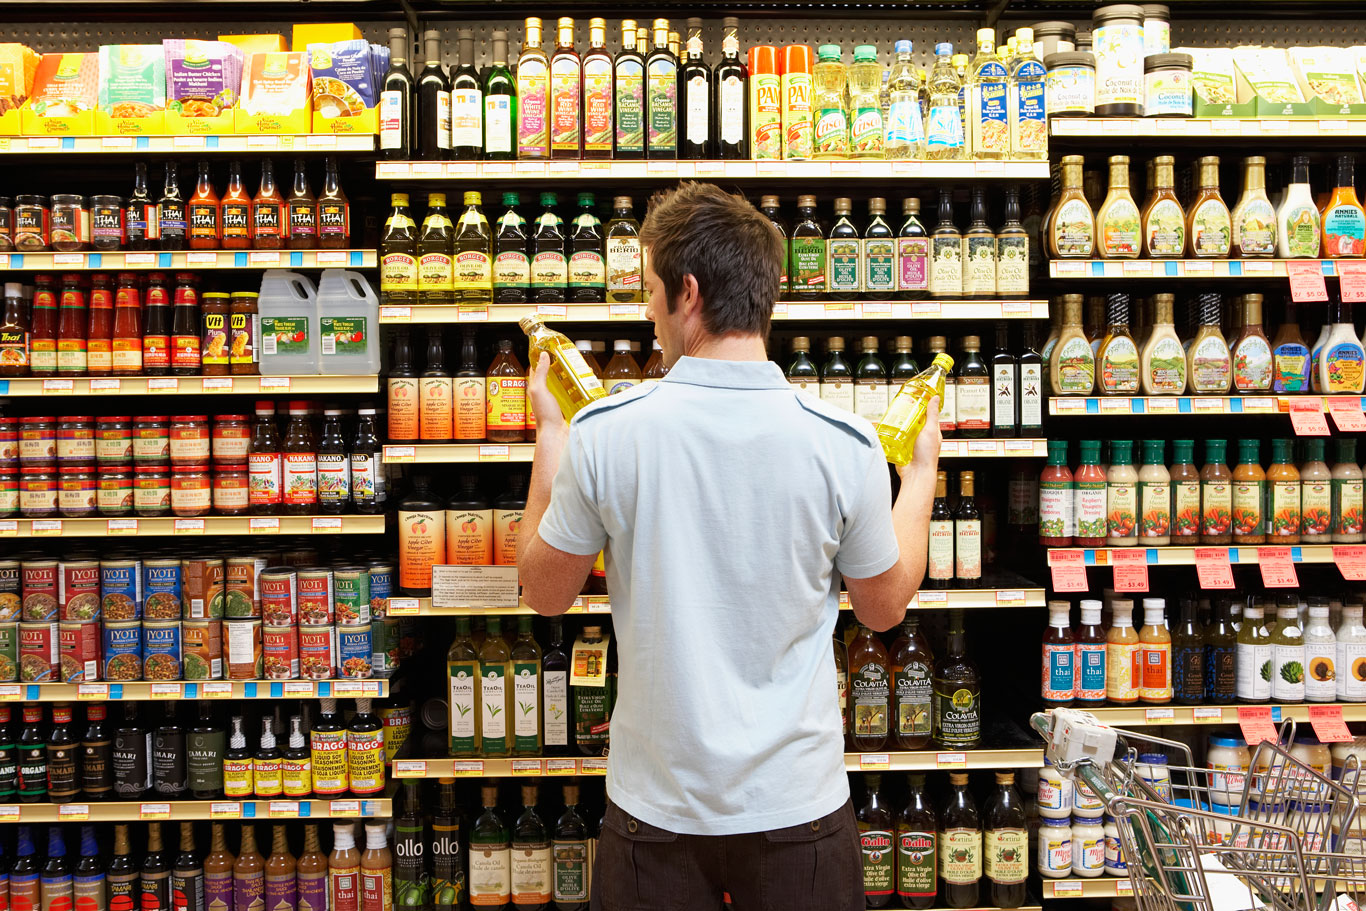 Man examining product packaging at a supermarket